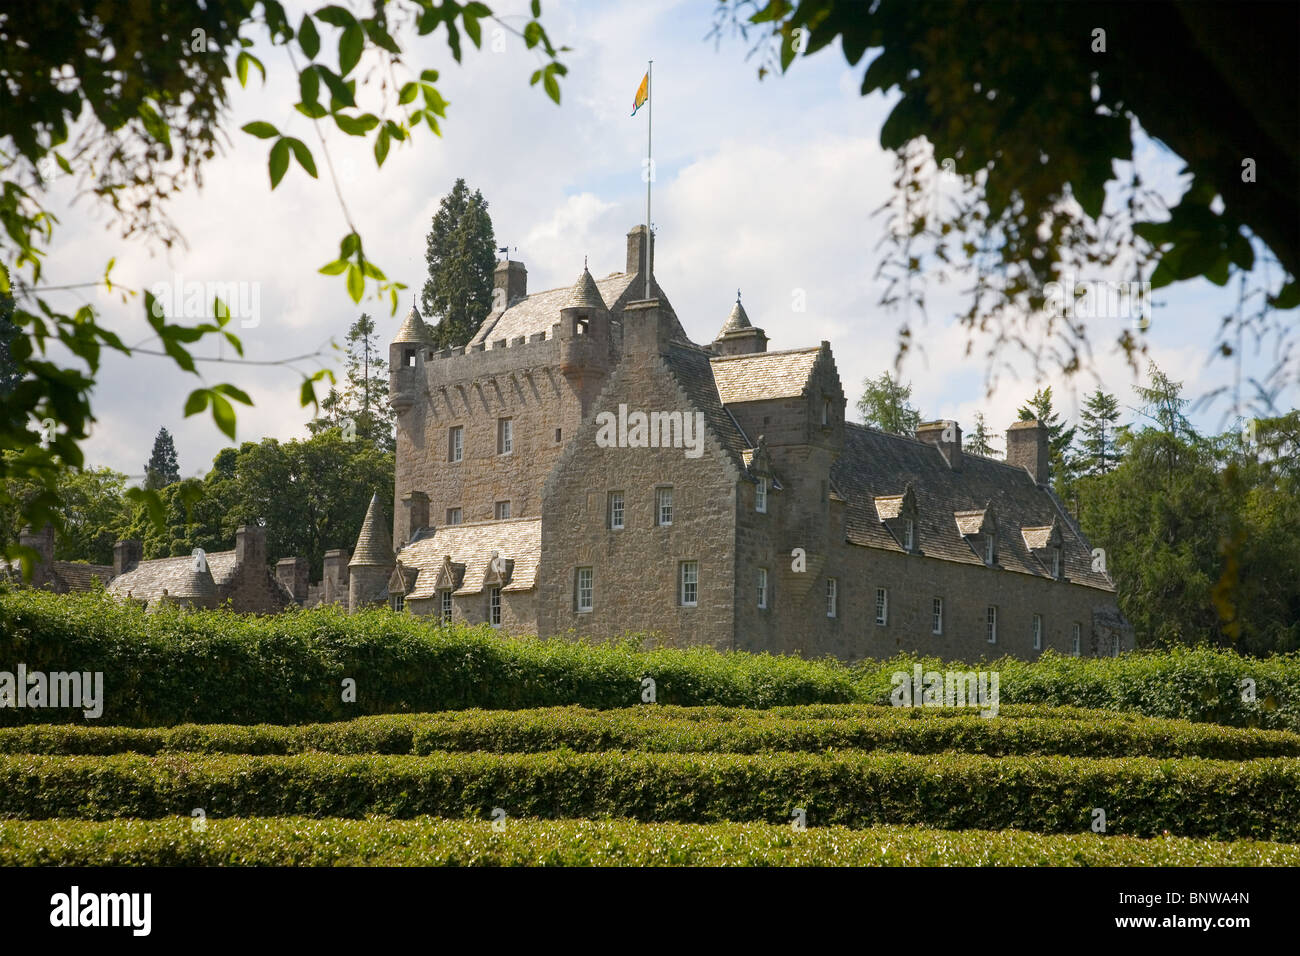 Cawdor Castle from the maze - 14th century home of the thanes of Cawdor - Nairn, Scotland - Stock Image